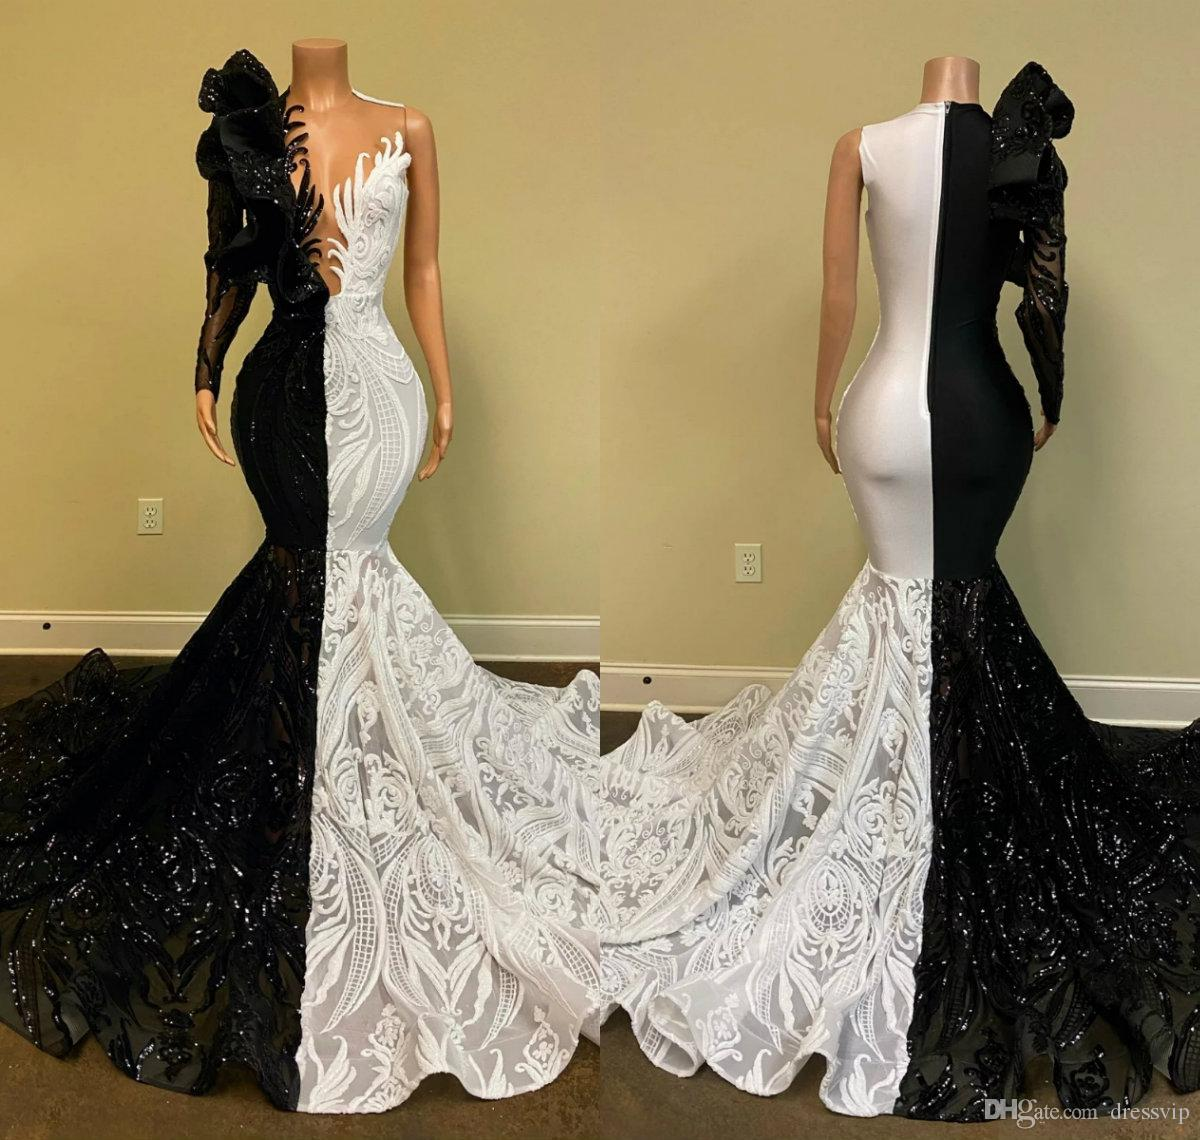 Designer Mermaid Prom Dresses Lace Appliqued Sequins Long Sleeve Evening Dress 2020 Black and White Illusion Party Gowns Vestidos De